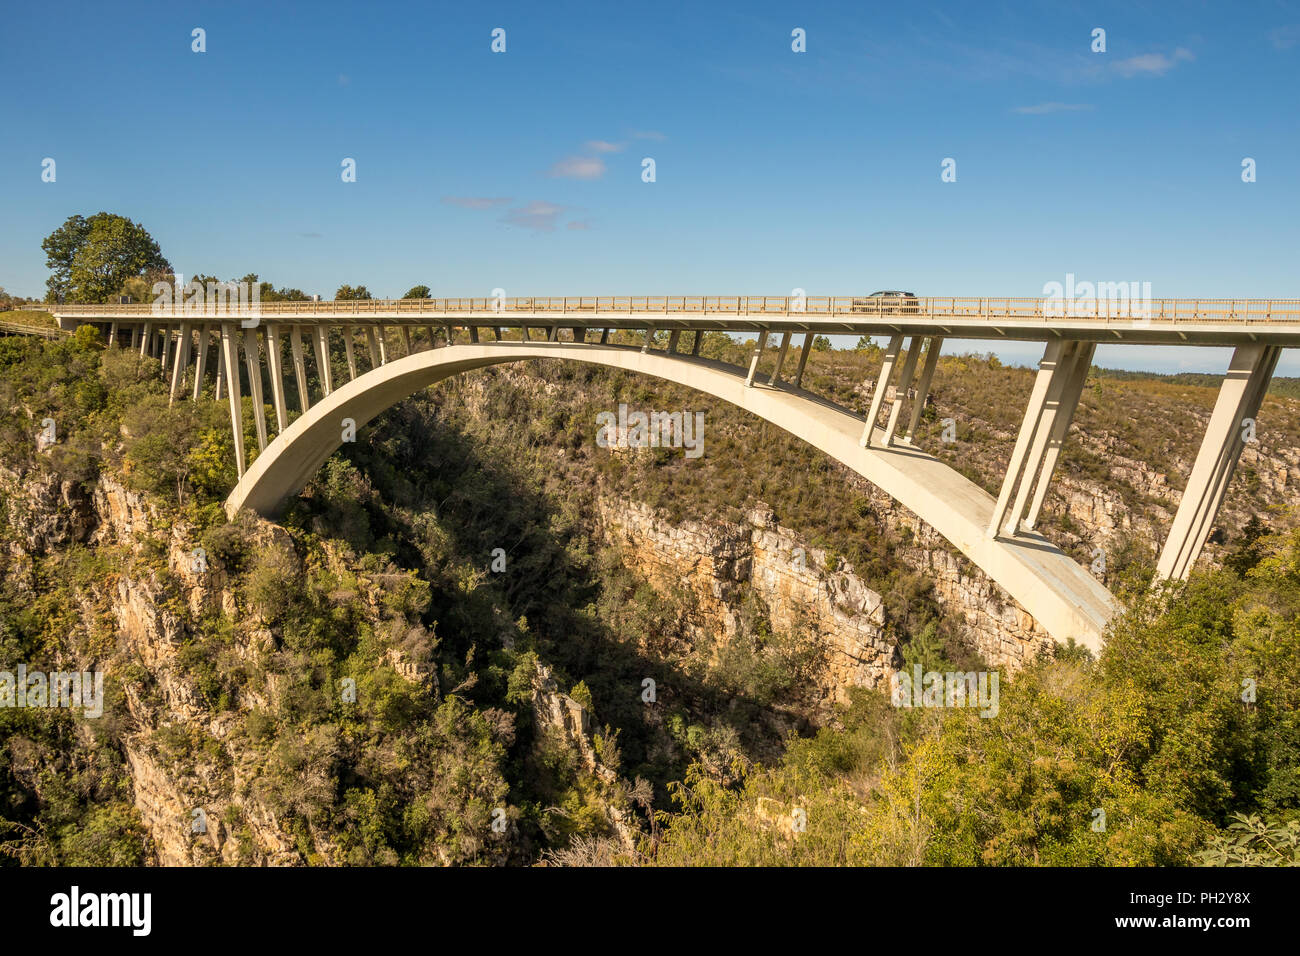 Tsitsikamma, South Africa - the Paul Sauer Bridge also known as the Storms River Bridge over the Storms River on the garden route - Stock Image